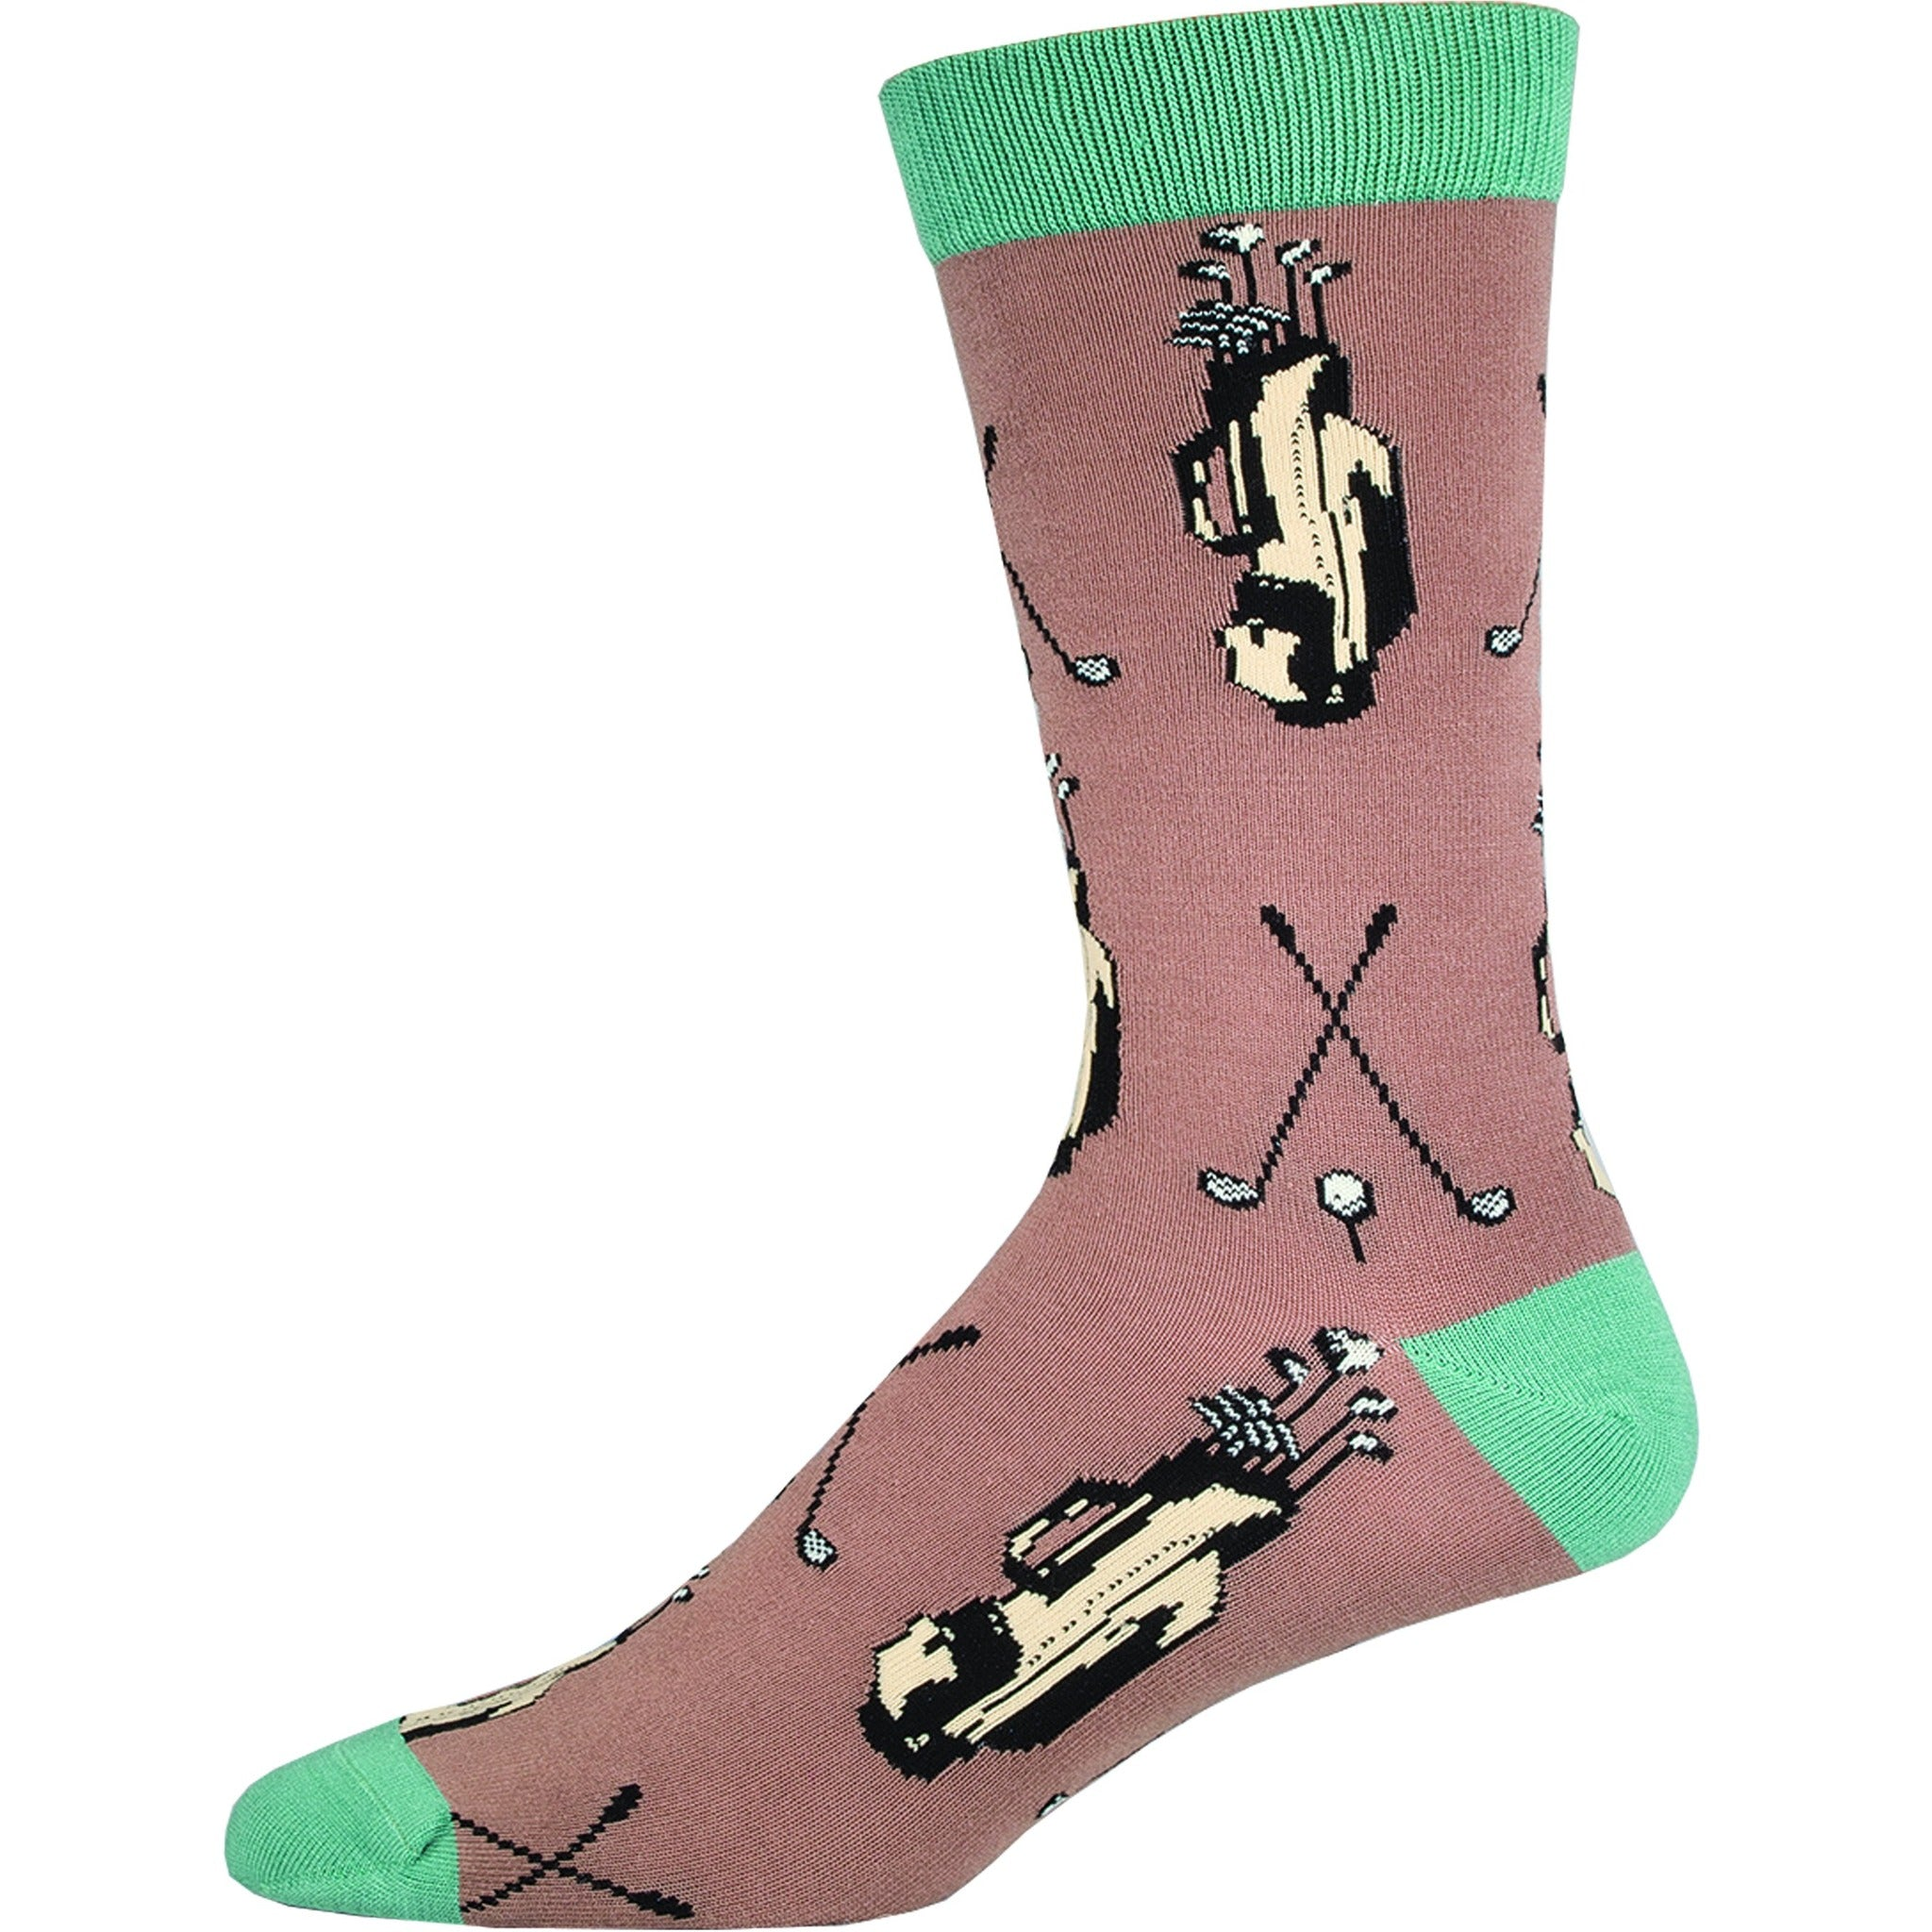 MEN'S BAMBOO GOLF CLUBS SOCKS - Laughing Sock, Men's Socks - socks, SockSmith - Hot Sox, Sock Guy, Socksmith